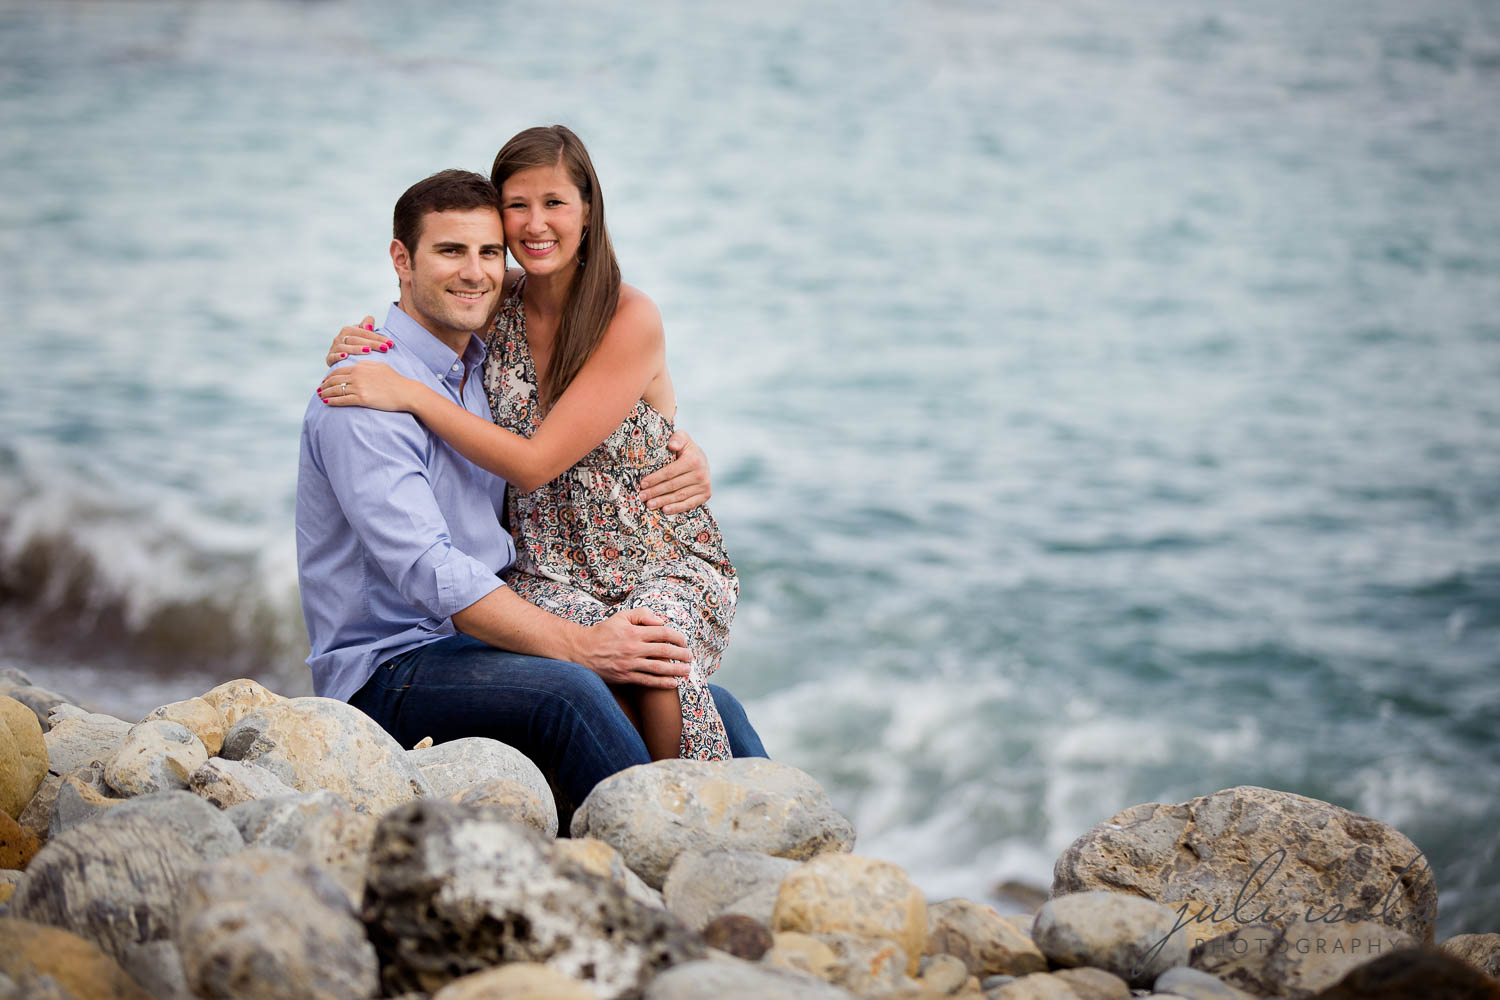 surprise_proposal_san_clemente_photographer (17 of 19).jpg